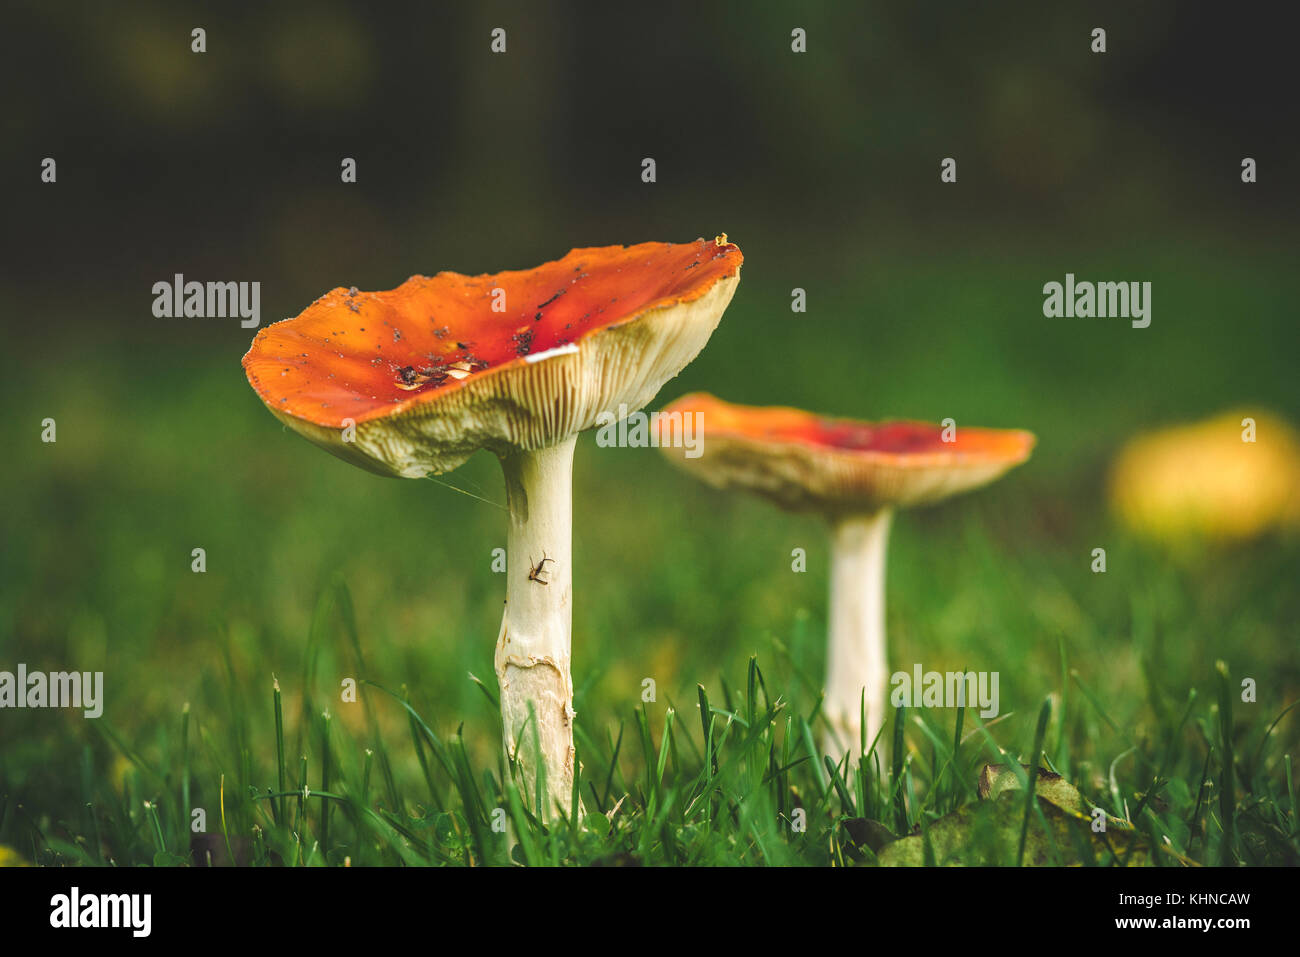 Red mushroom on a green lawn in the fall - Stock Image